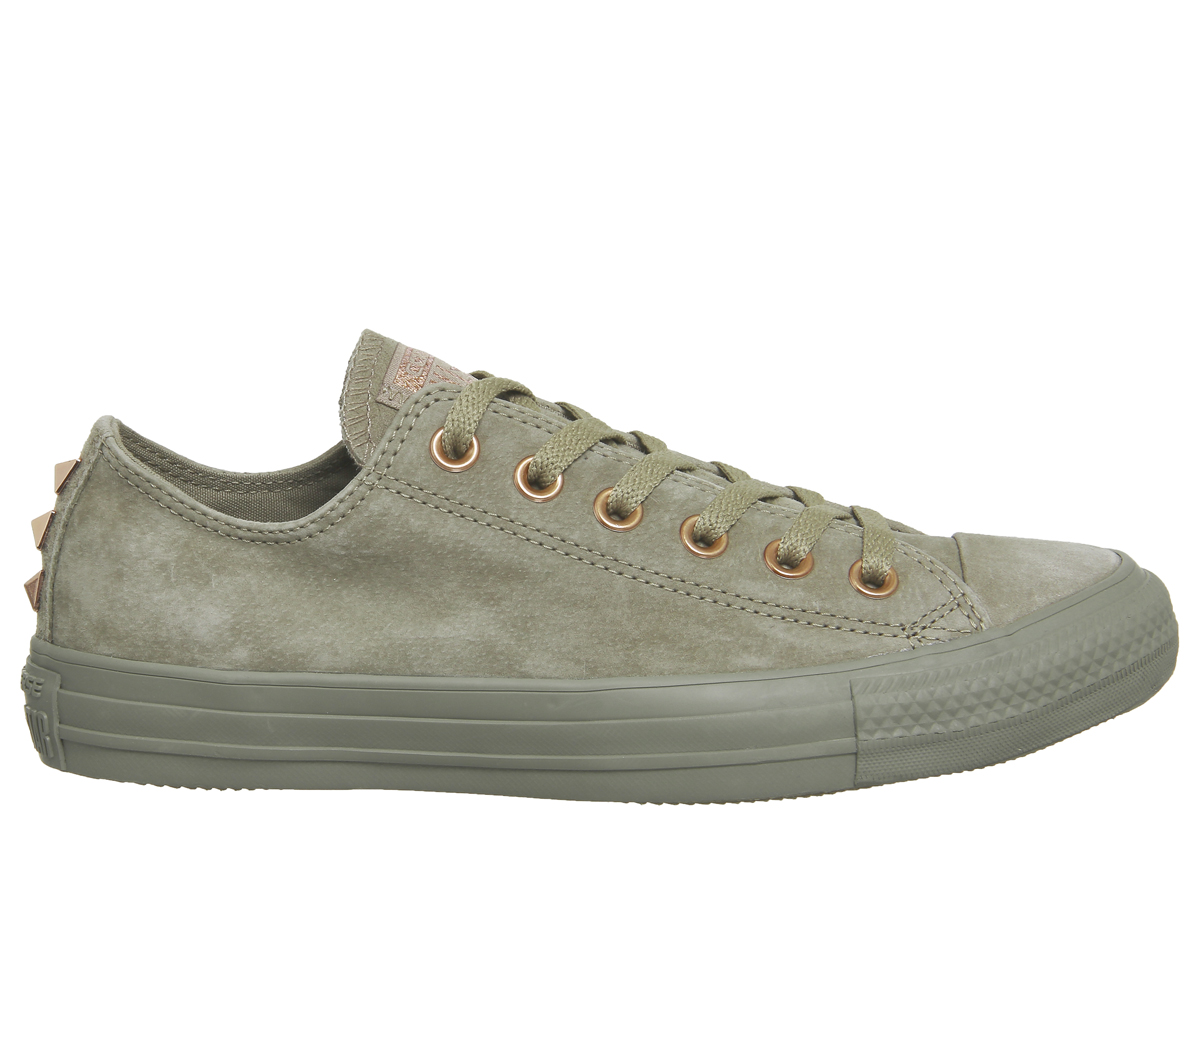 Womens Converse All Star Low Leather KHAKI STUD EXCLUSIVE Trainers Shoes Picture 2 of 6 Picture 3 of 6